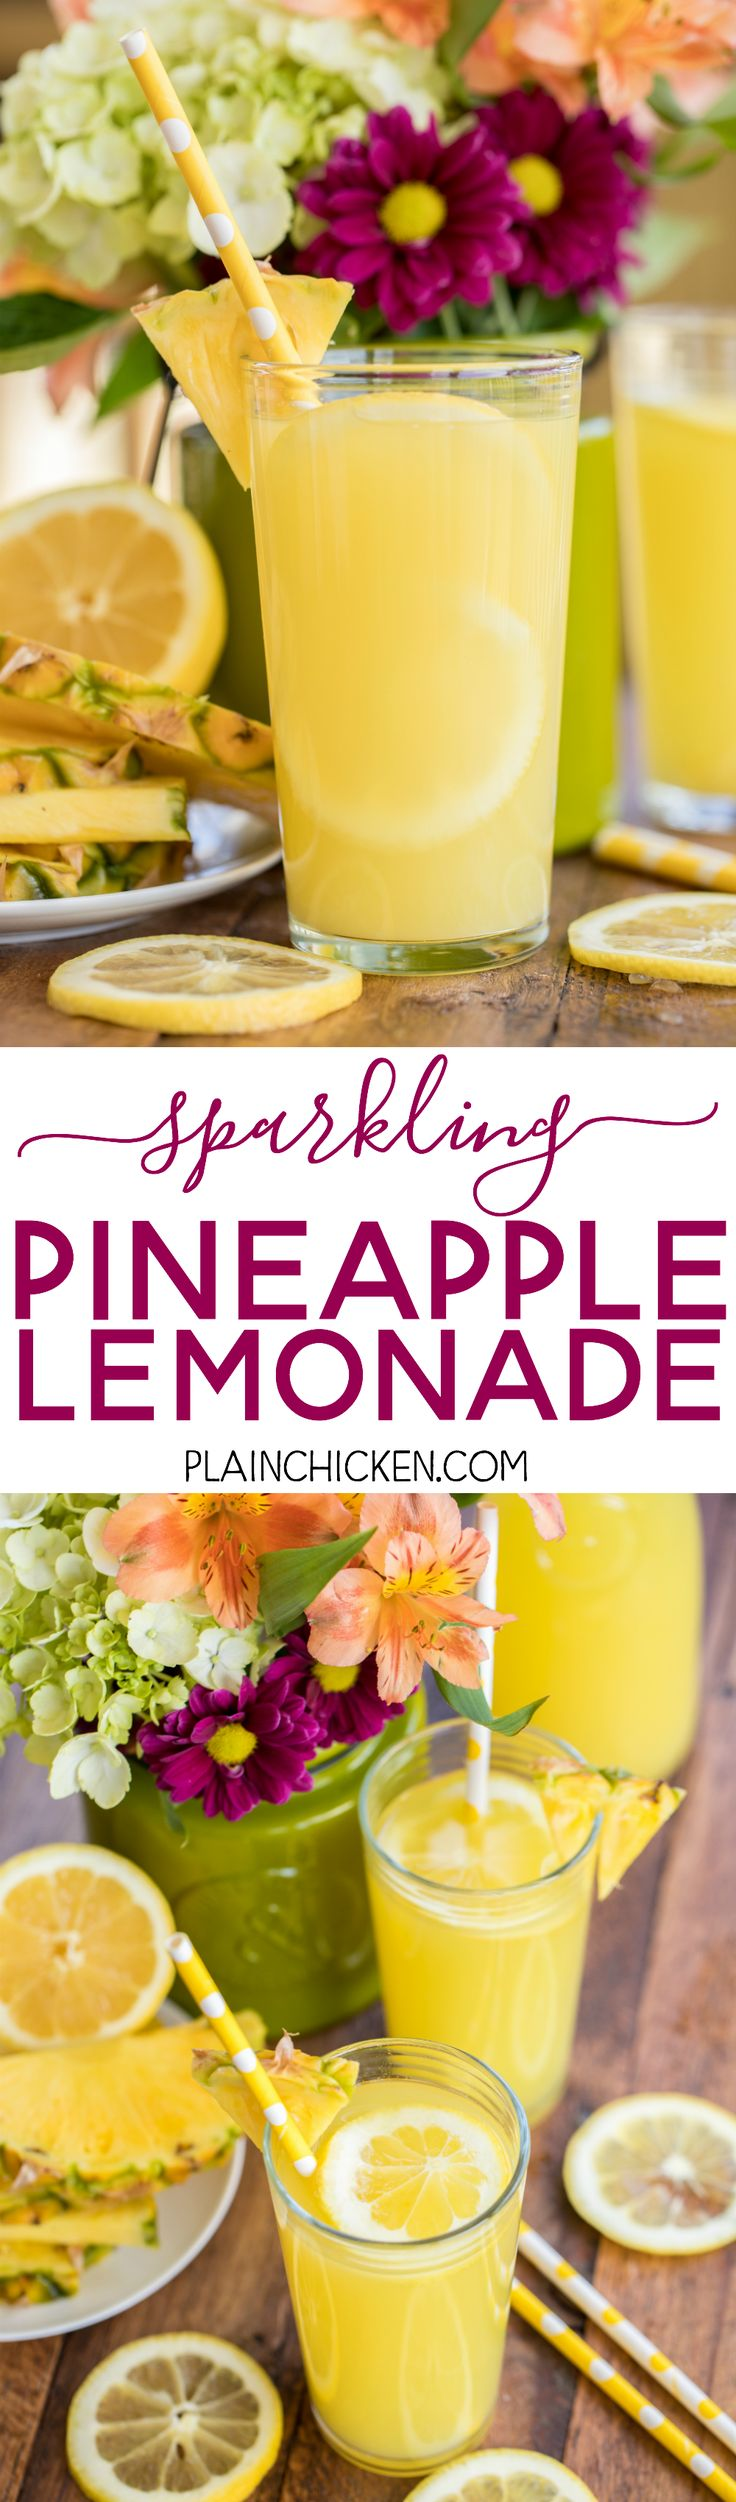 #Sparkling Pineapple Lemonade - our signature summer cocktail! Can make with or without alcohol. Lemonade mix, vodka, pineapple juice and sprite. SO easy to make! Super refreshing cocktail for all your summer parties.